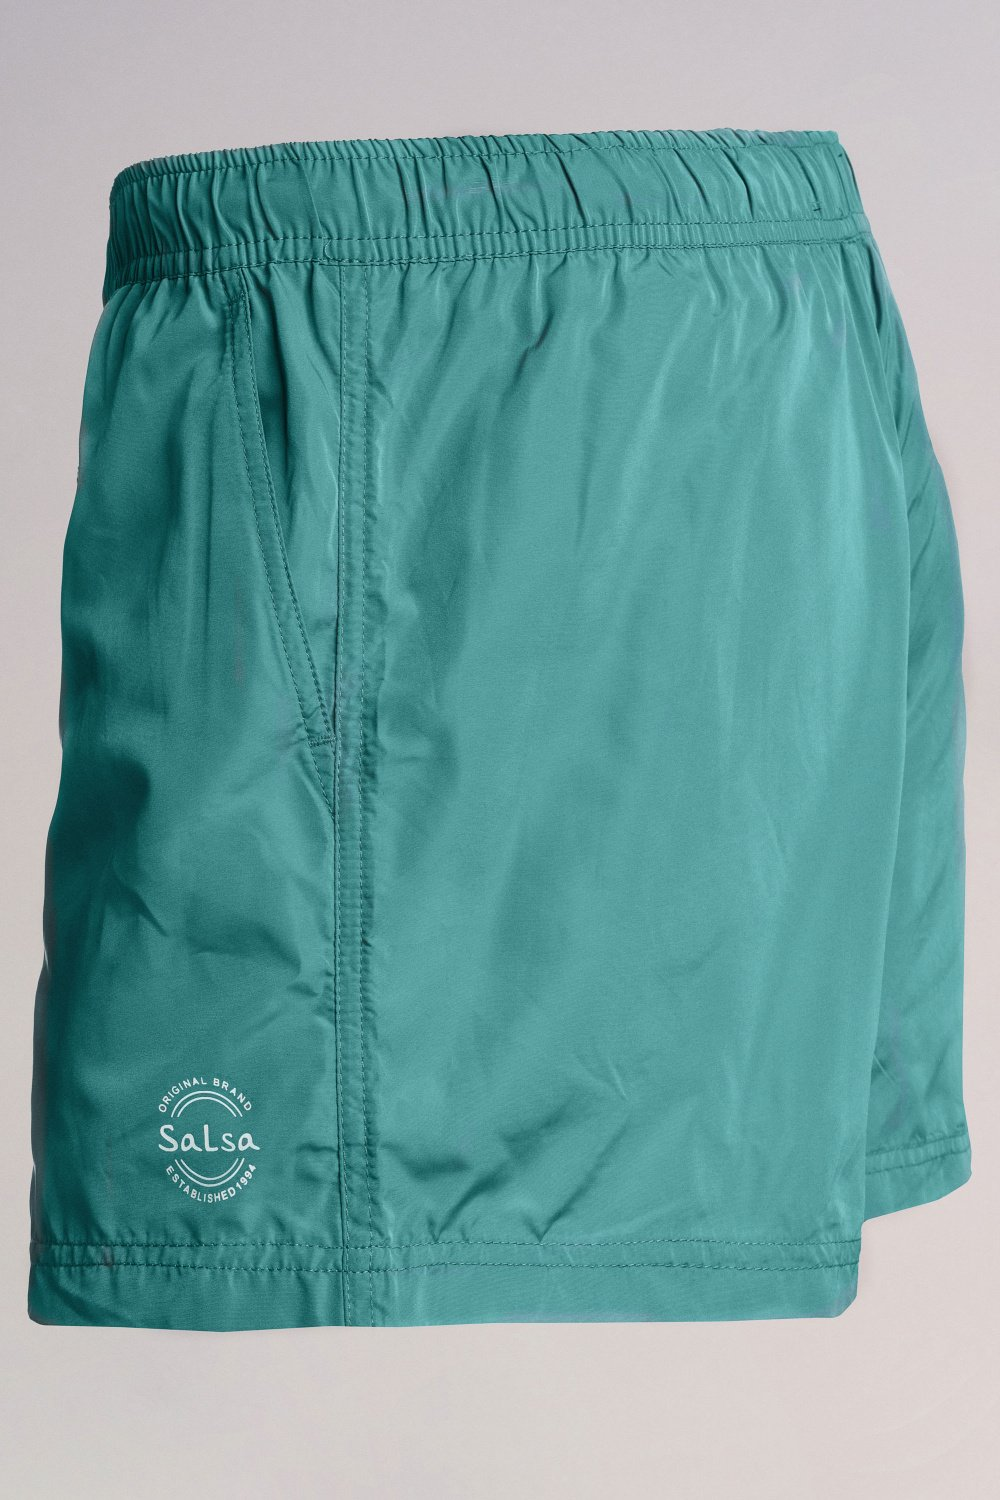 Beach shorts that change by default - Salsa